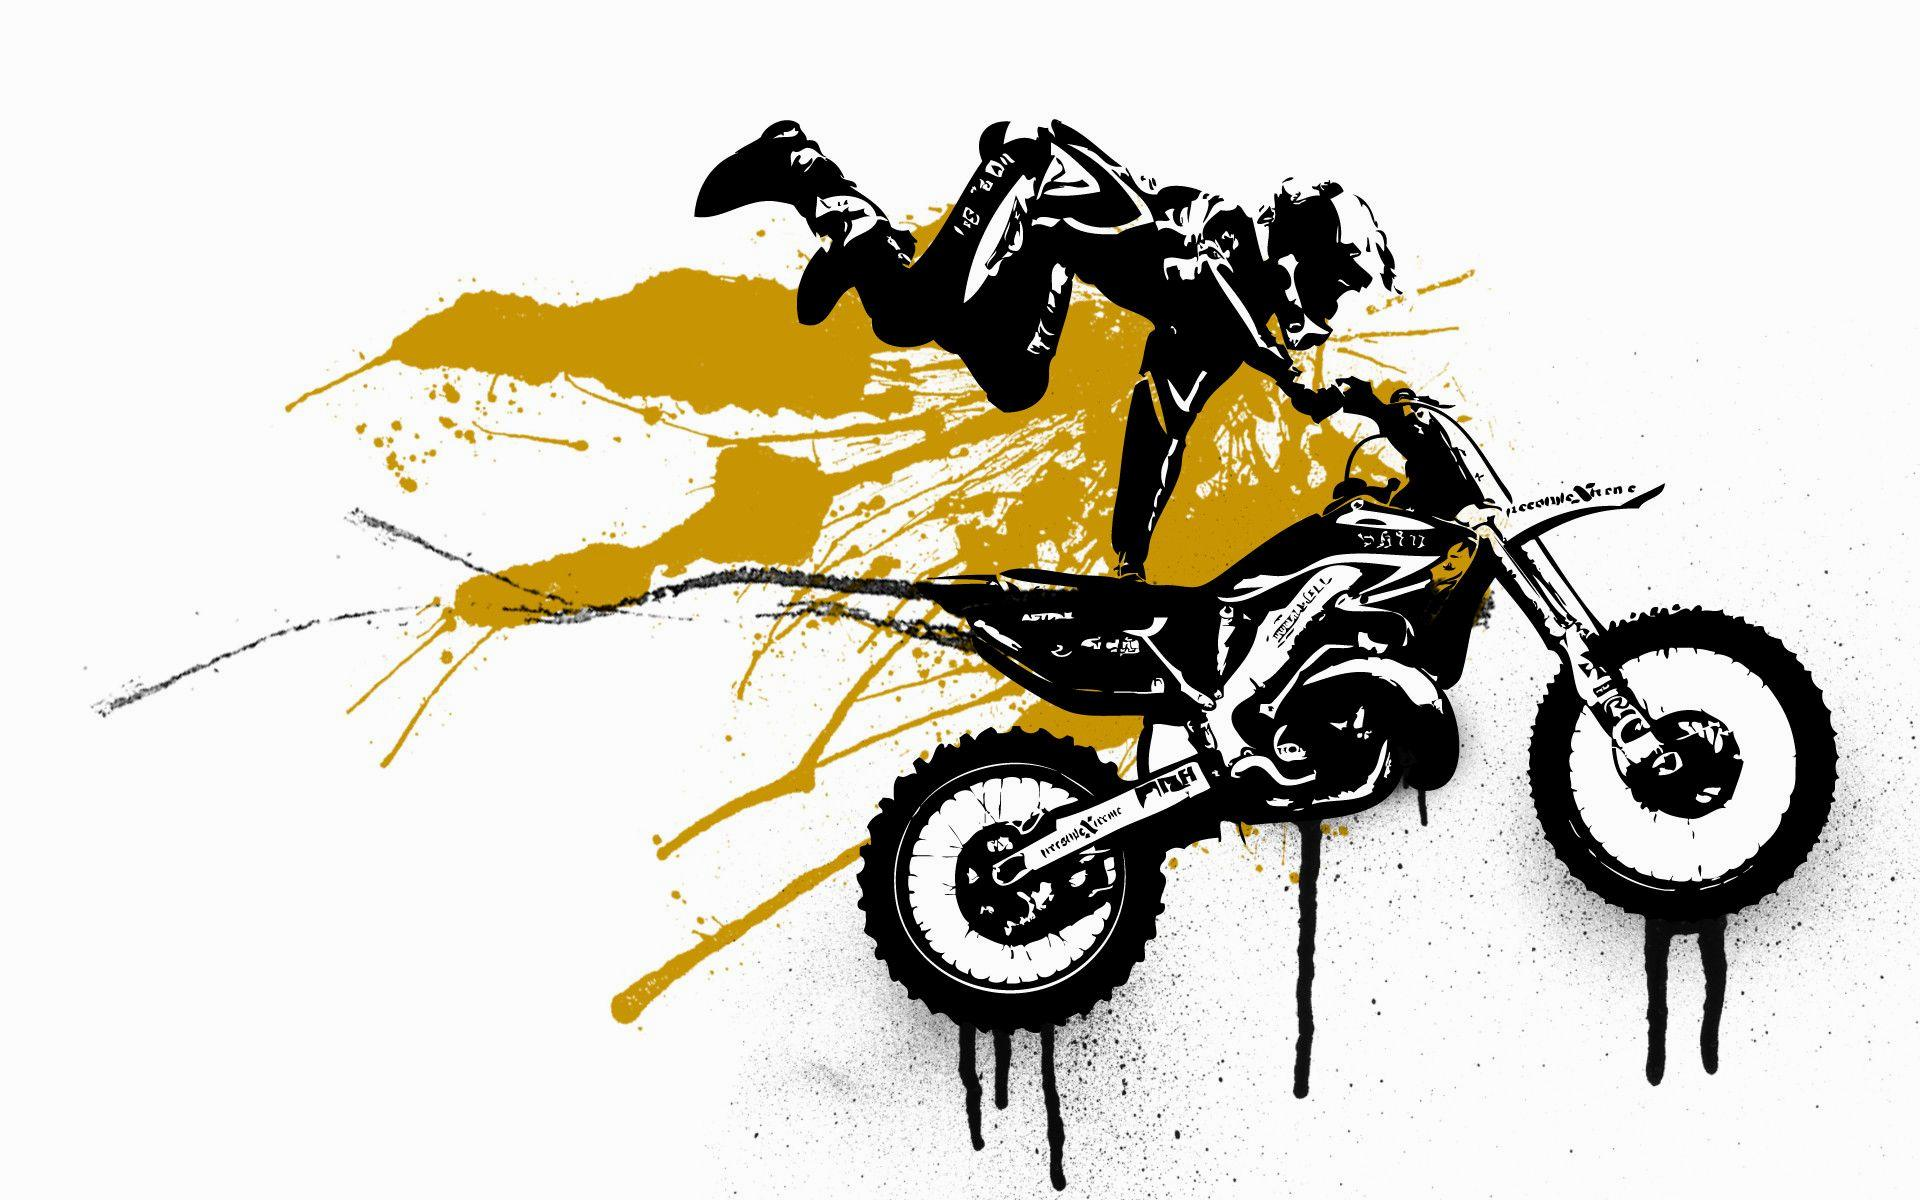 Motocross Wallpaper  Android Apps on Google Play 1920x1200